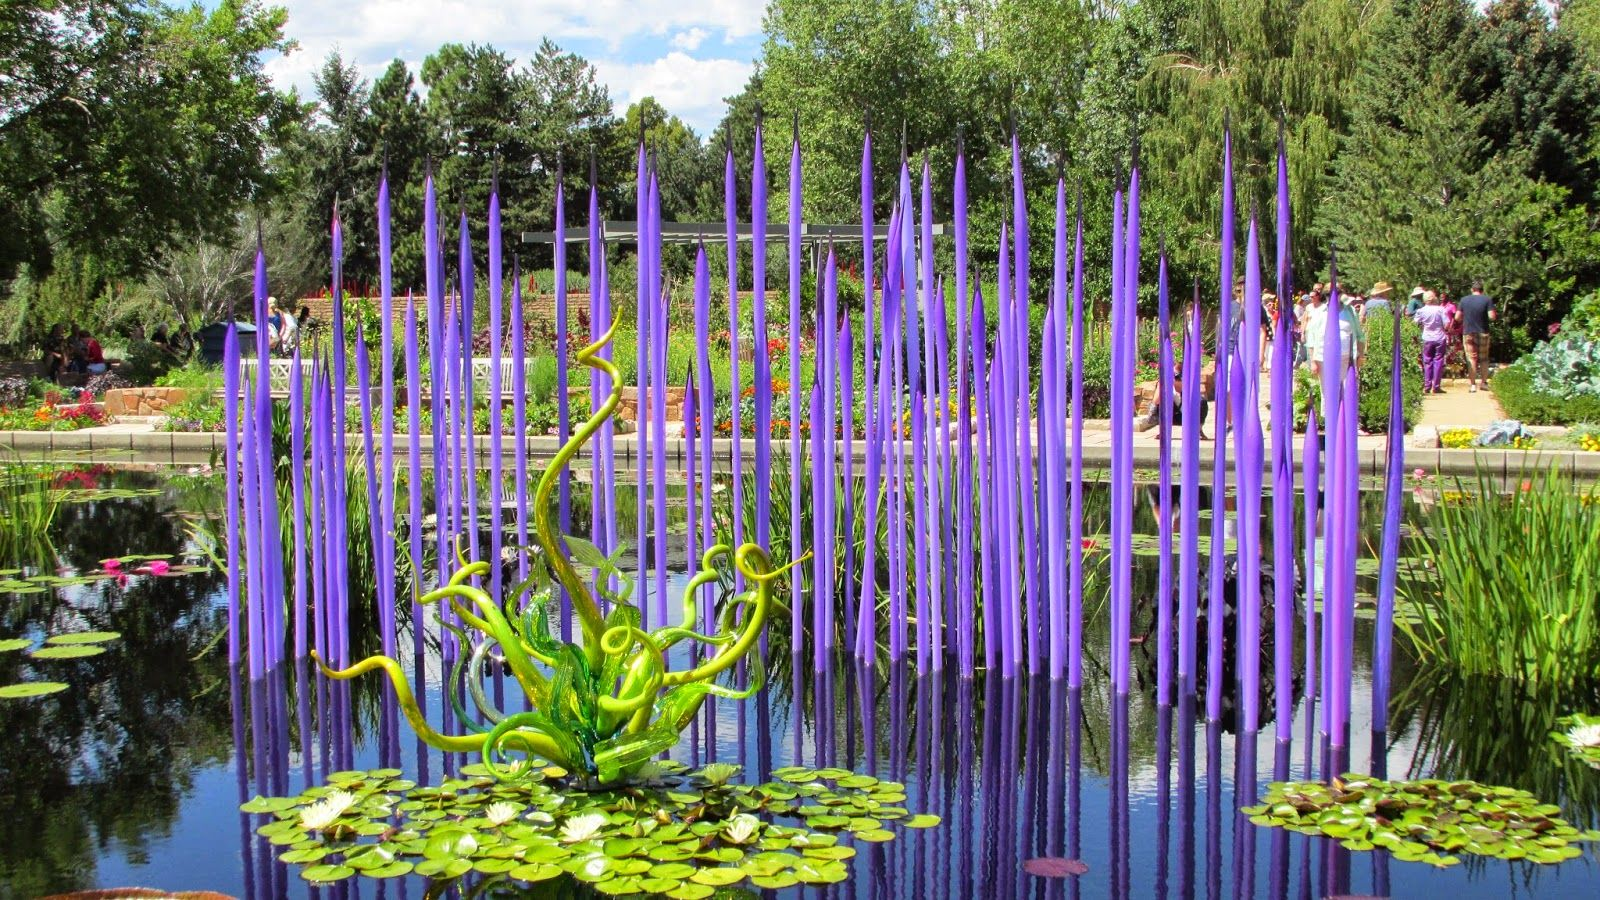 The Chihuly art at the Botanic Gardens Denver Botanic Gardens - Google Search